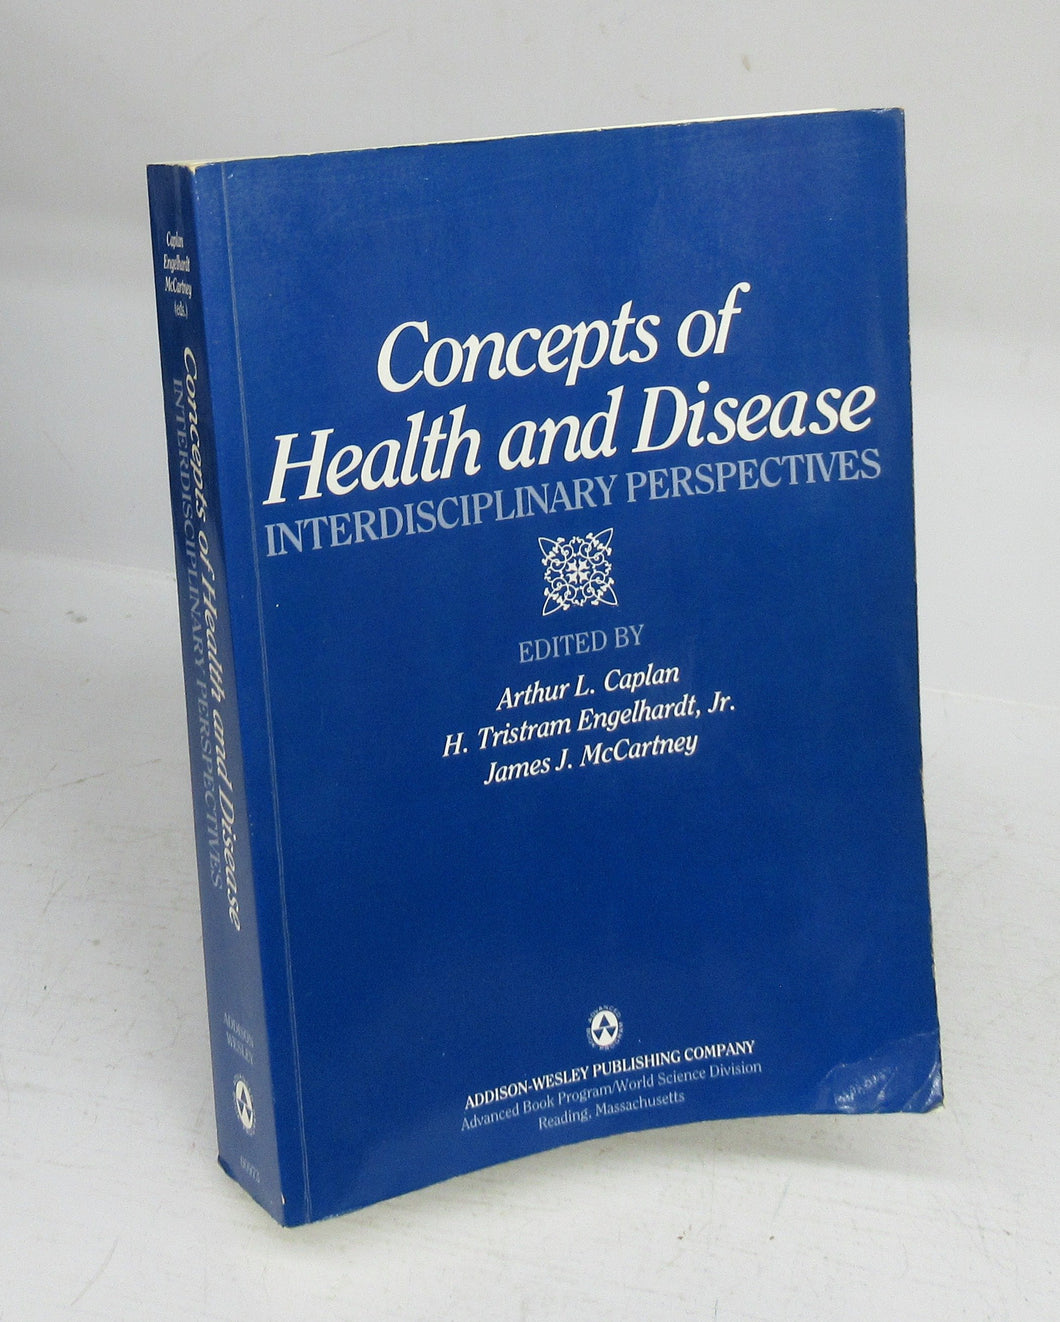 Concepts of Health and Disease: Interdisciplinary Perspectives